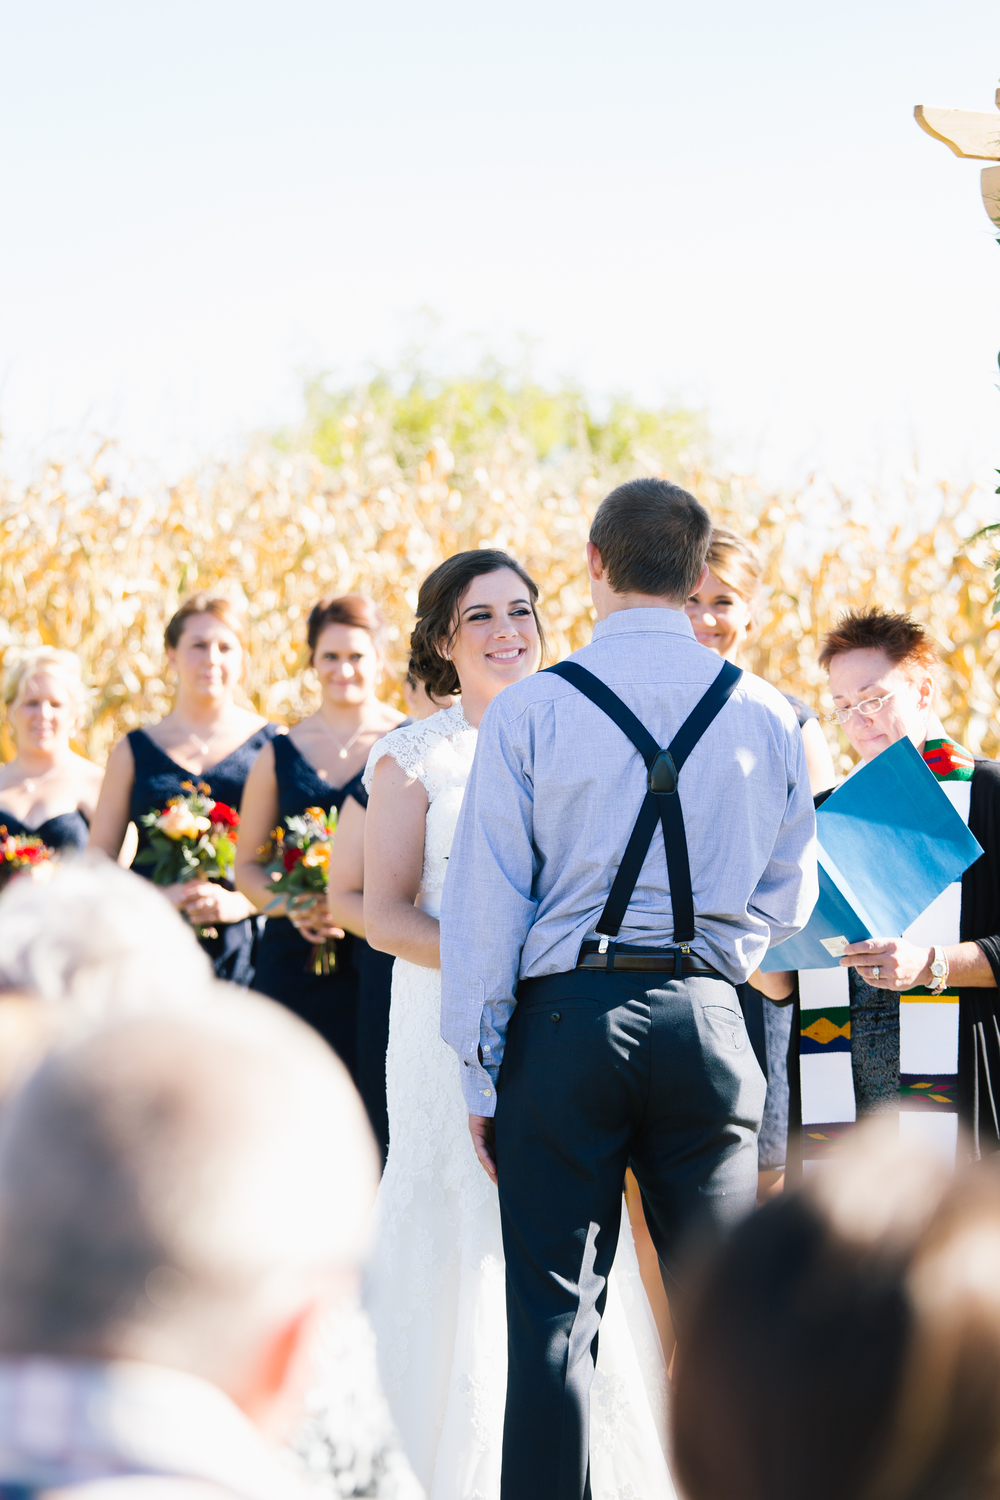 Allison Hopperstad Photography, Minnesota Wedding Photographers, Minnesota Wedding, Outdoor Minnesota Wedding, Outdoor Wedding, Outdoor Fall Wedding, Minnesota Fall Wedding, Barn Wedding, Minnesota Barn Wedding, Dellwood Barn Wedding, Minneapolis Wedding Photographers, Farm Wedding, Lace Wedding Dress, Navy Bridesmaids Dresses, Groom with Bowtie, Groomsmen with Bowties, Lakeside Floral, Be Kind Salon, Twin Cities Pretty, Allure Bridal, Bella Bridal, Kennedy Blue